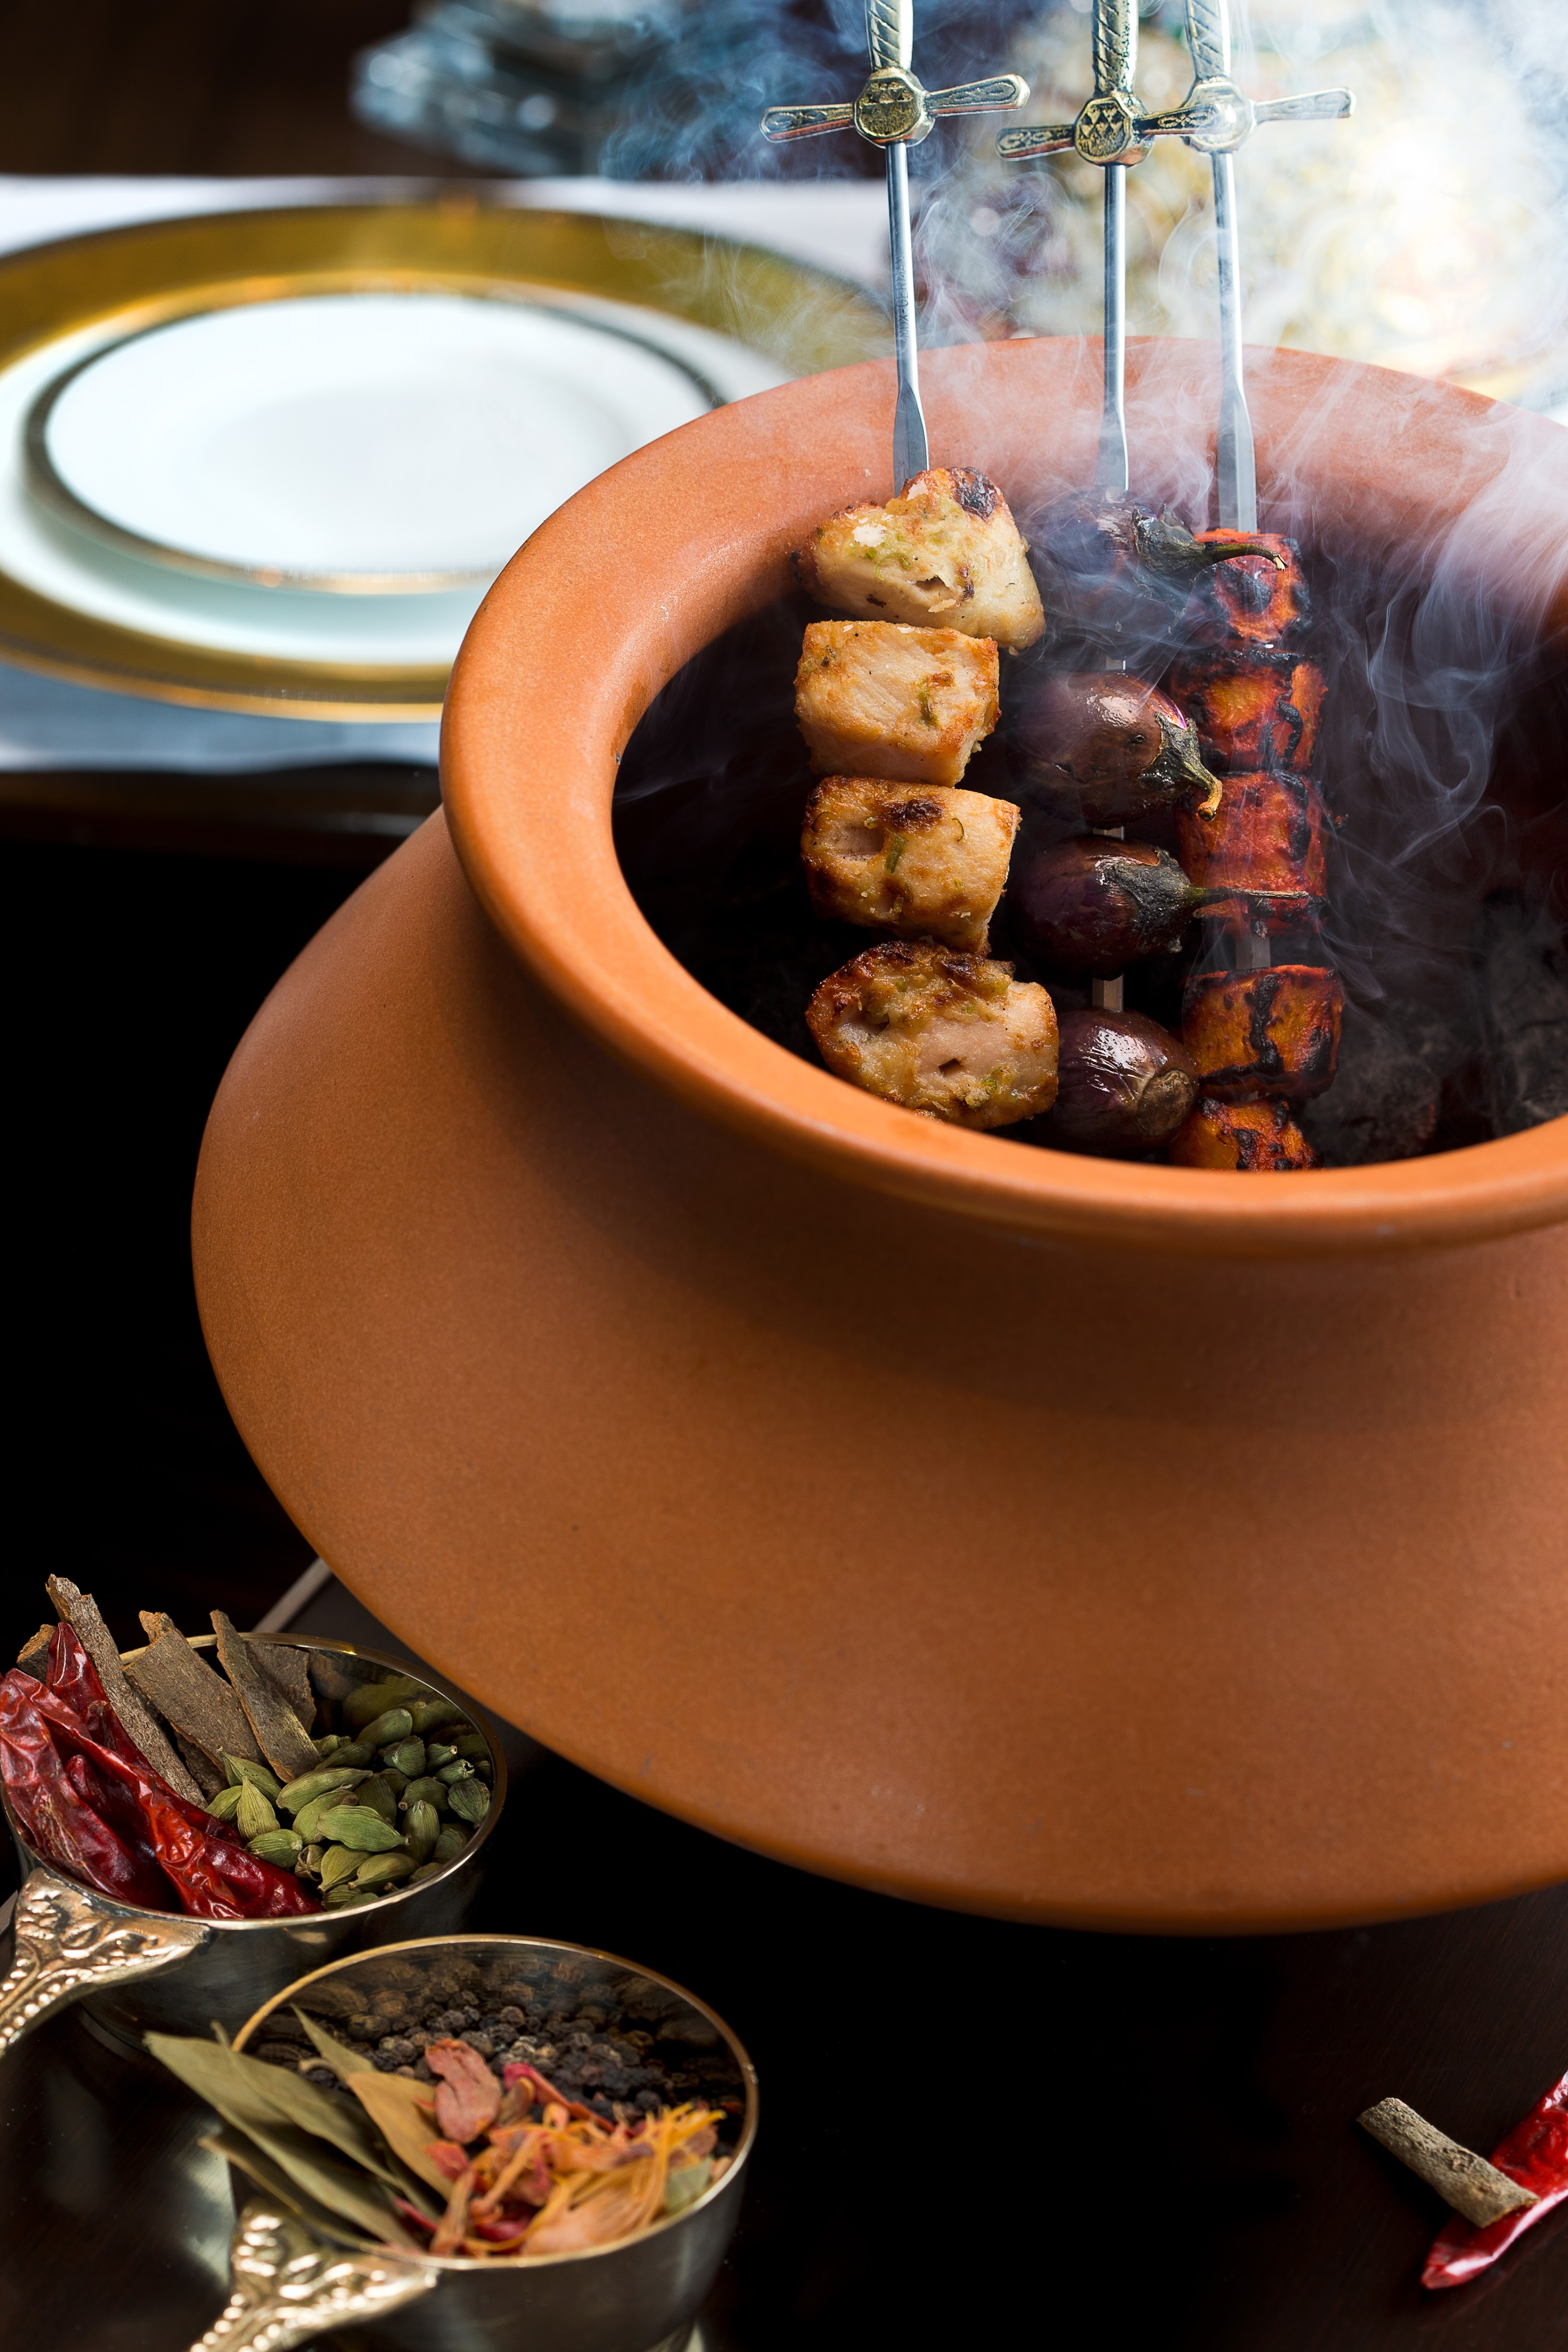 From the Tandoor